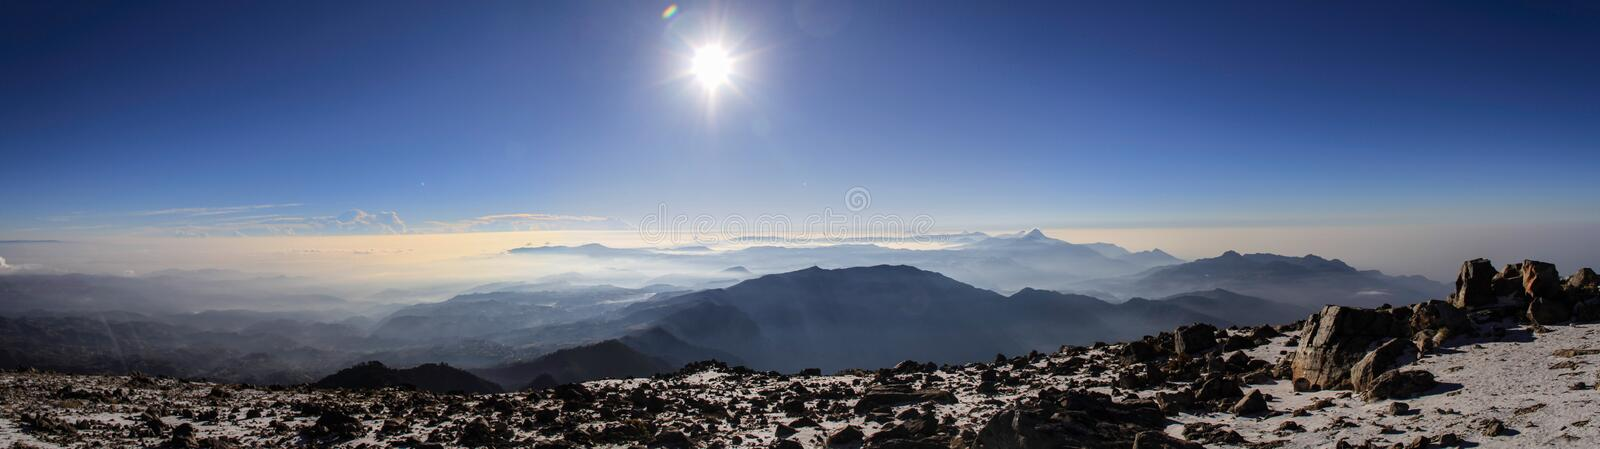 Panoramic view on the Volcano chain of Guatemala, from the summit of the Tajumulco Volcano, San Marcos, Guatemala. The Central American Volcanic Arc often stock images